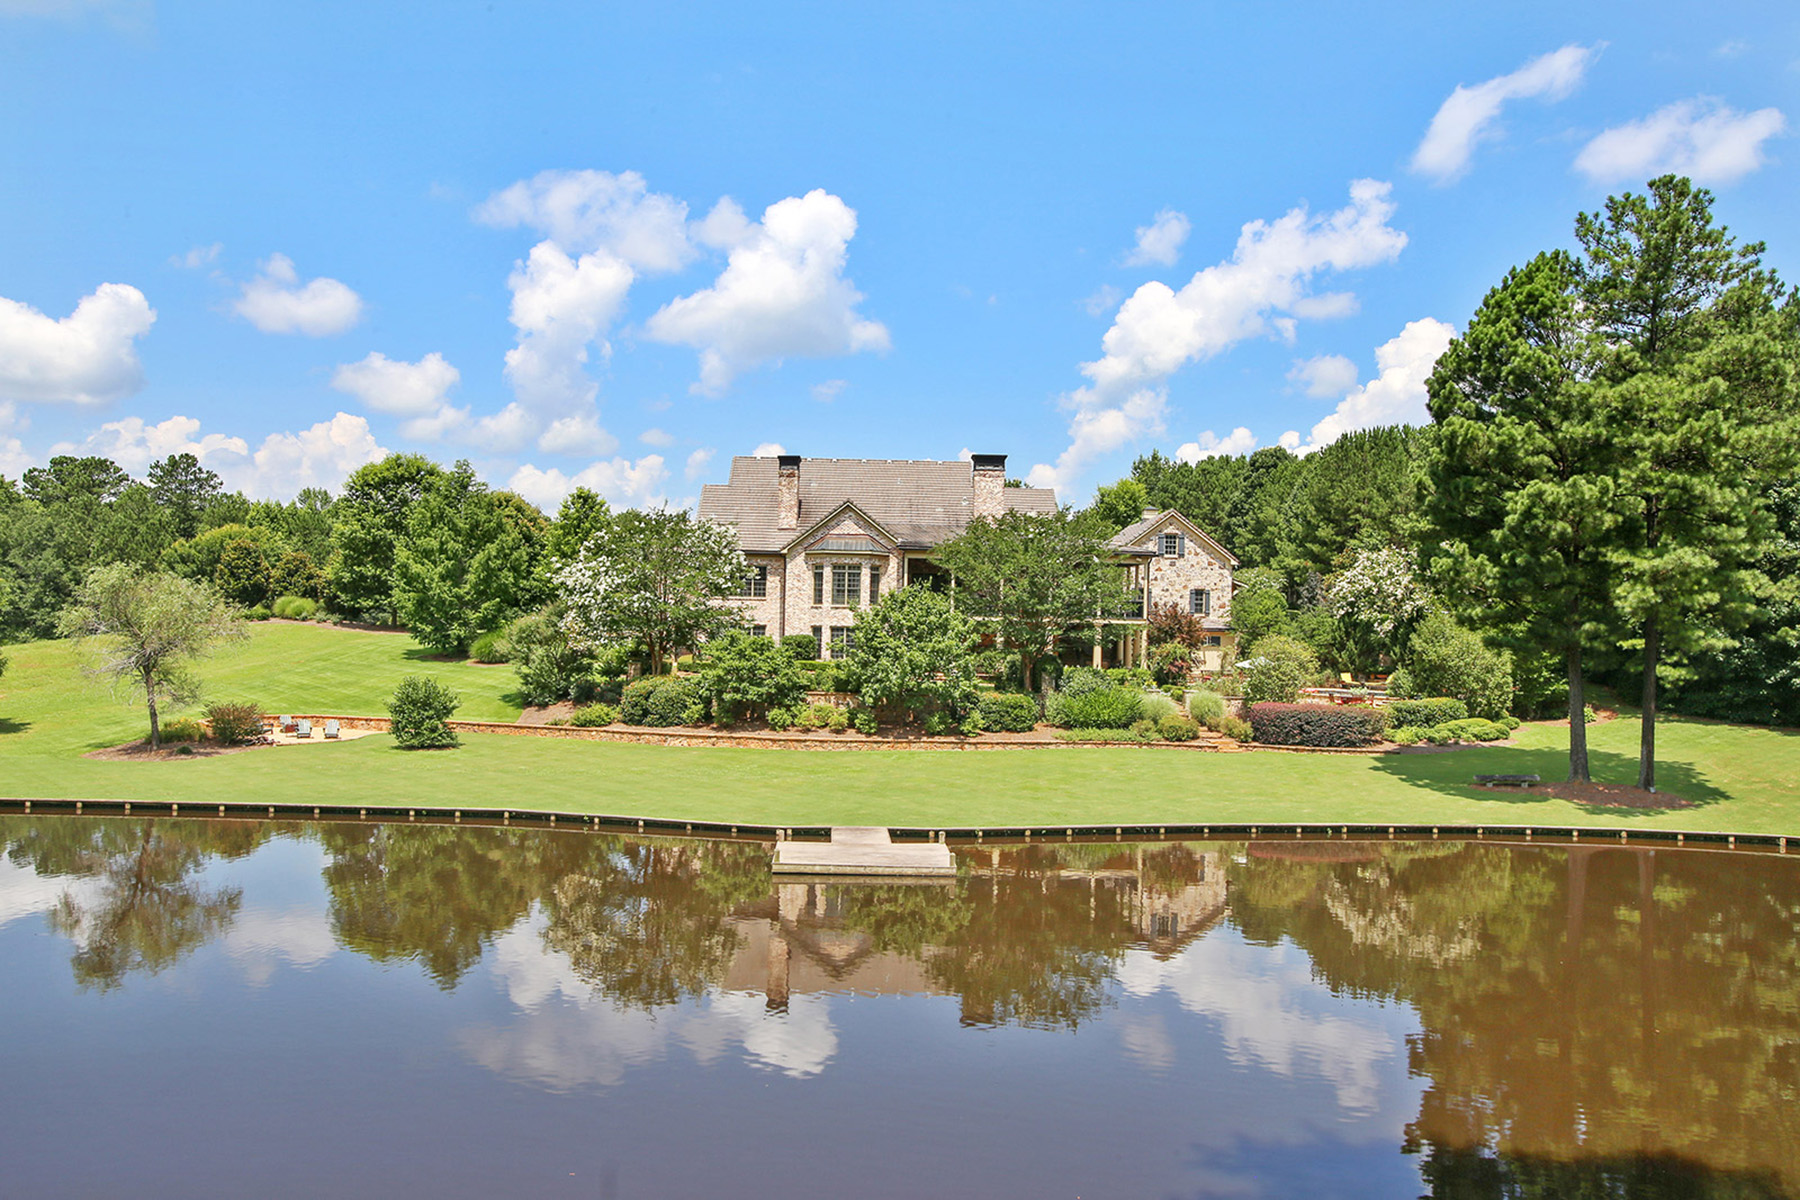 Farm / Ranch / Plantation for Sale at Magnificent Equestrian and Recreational Estate 480 JD Walton Road Newnan, Georgia 30263 United States